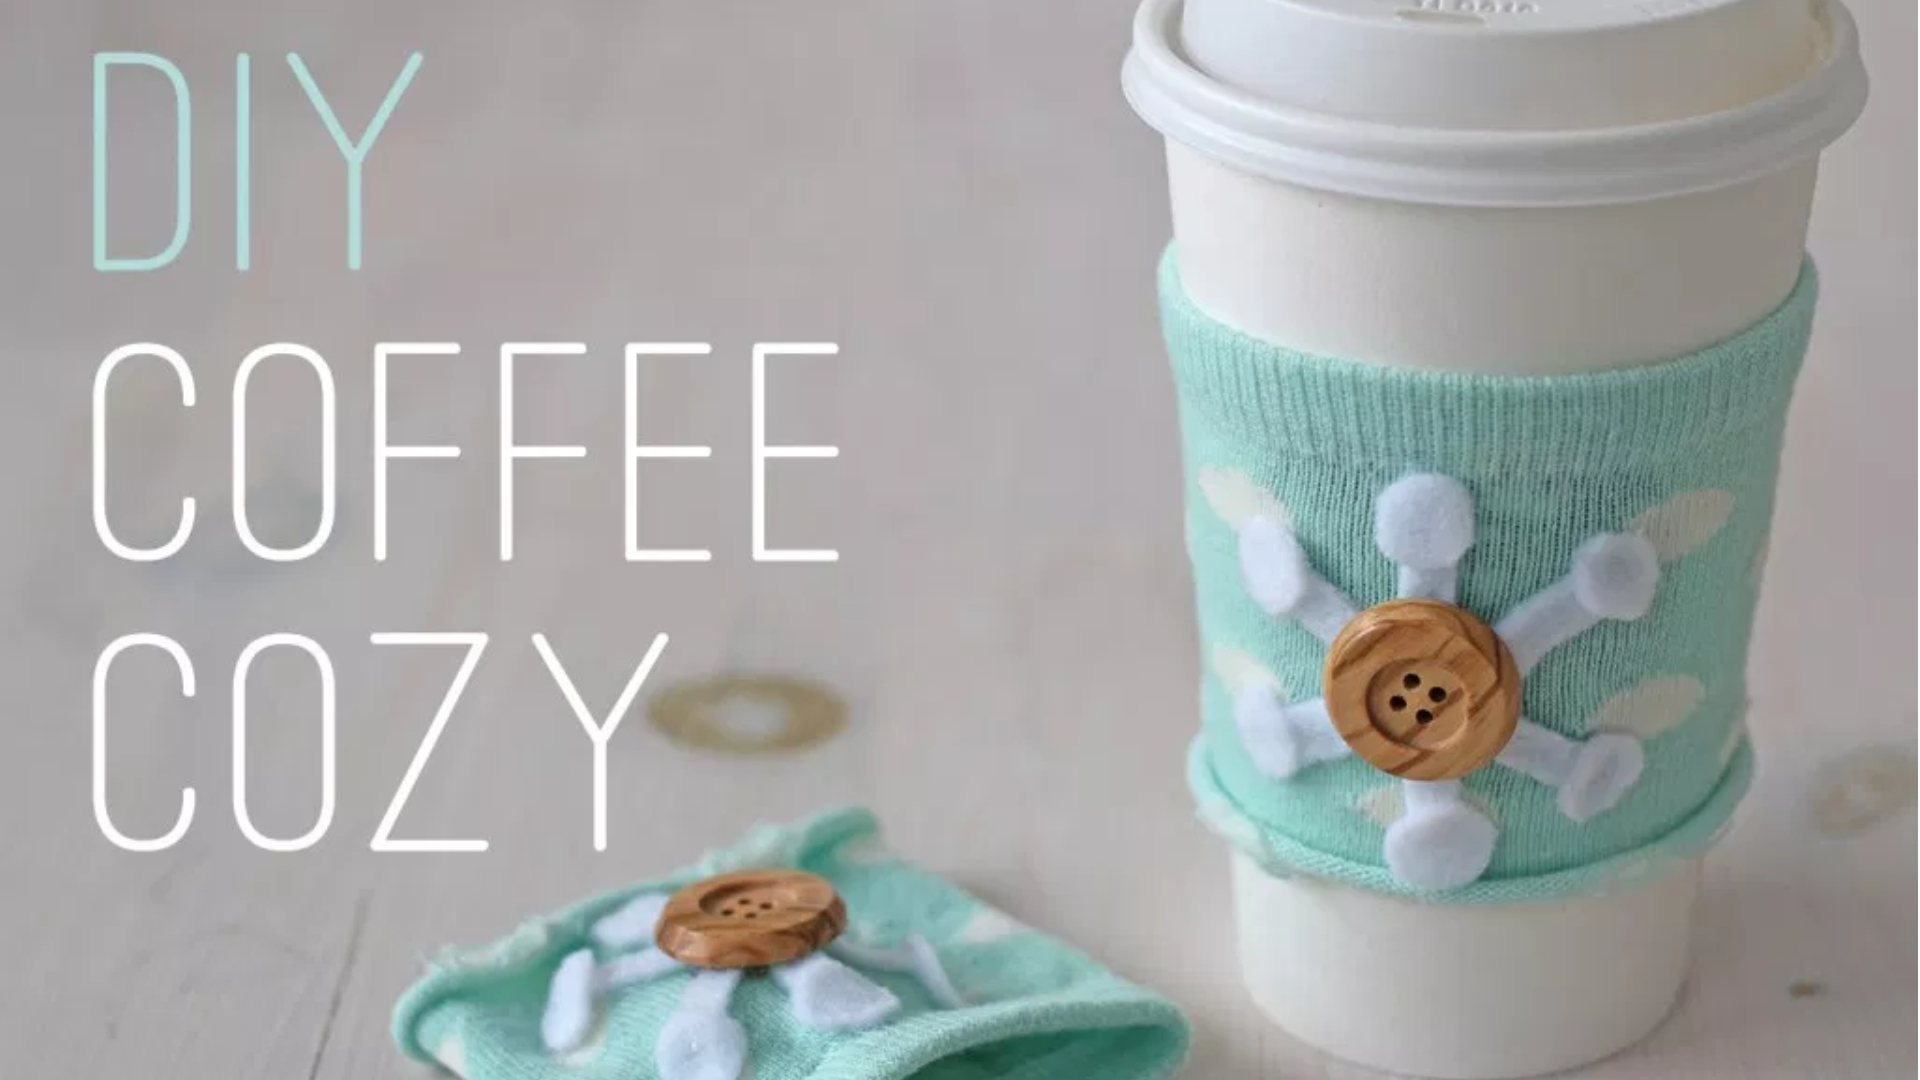 http://splashofsomething.com/2013/11/15/an-easy-peasy-no-sew-craft-to-keep-your-coffee-cozy/